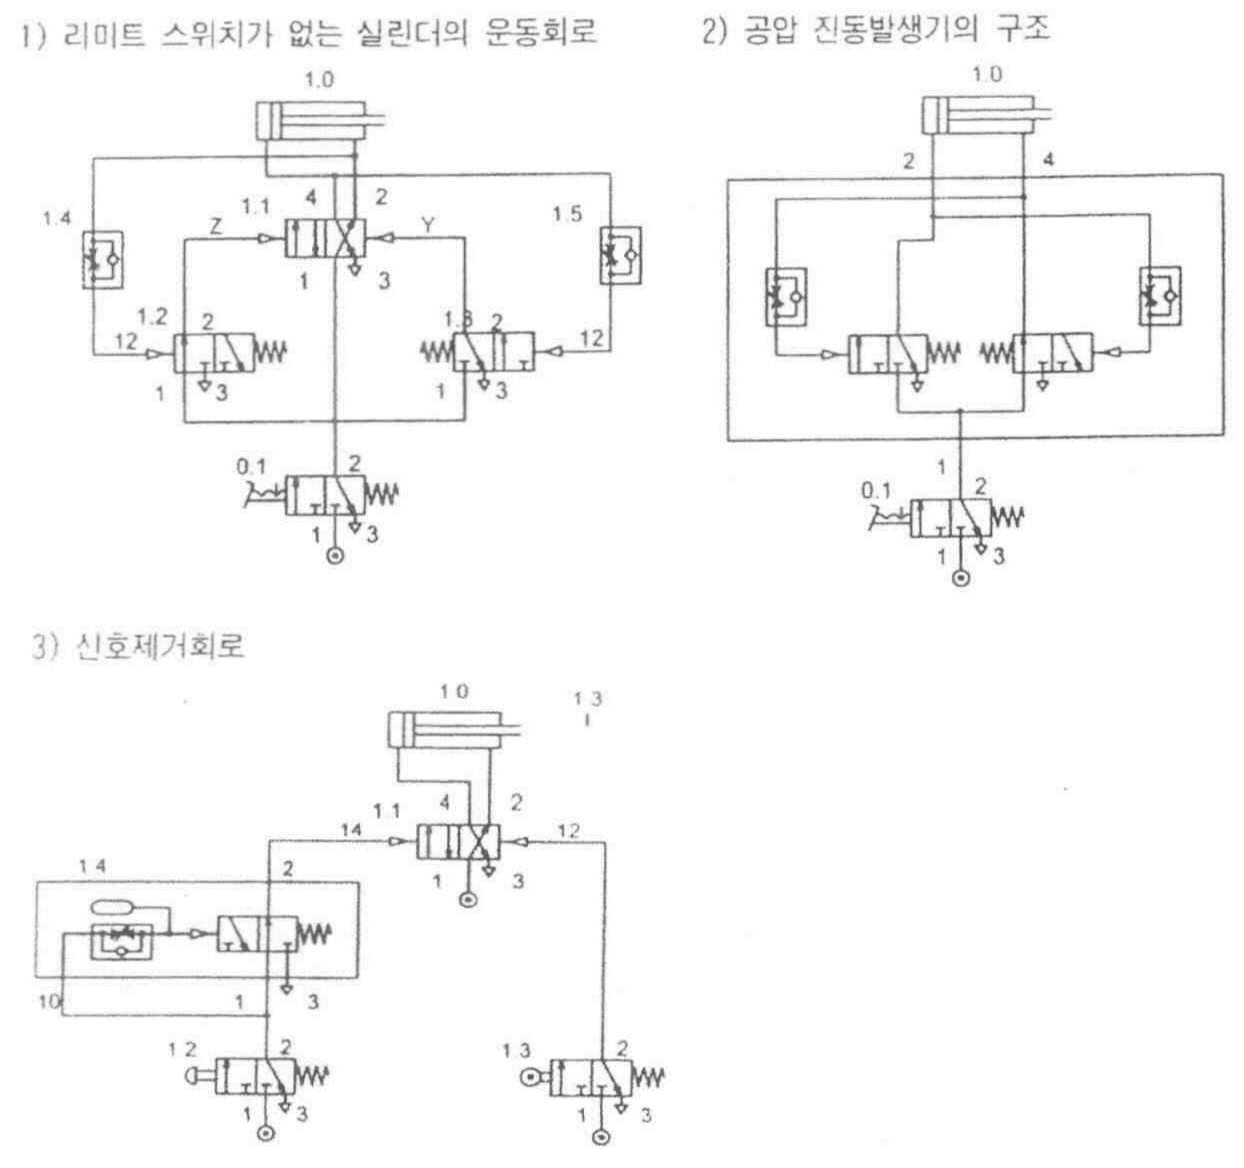 Kr20120064663a Air Pressure Type Regulation Fish And Shell Fishe Induction Cooker Circuit Signalprocessing Diagram Dissection Apparatus Method Of Used Google Patents